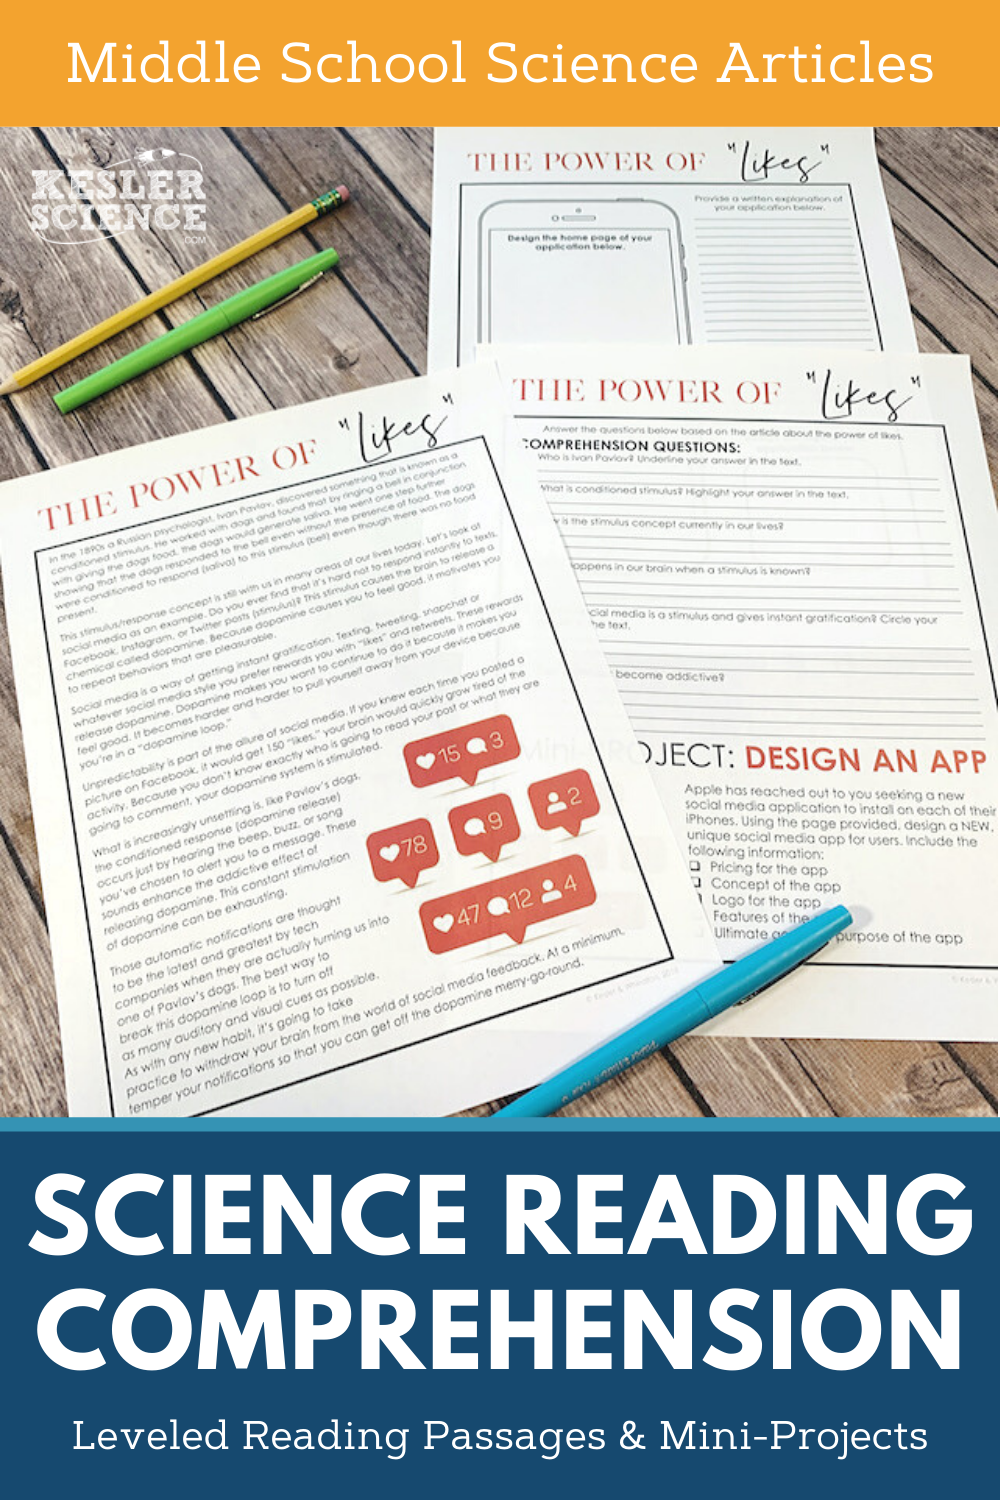 40 Science Reading Passages Middle School Science Middle School Science Reading Passages Science Reading Comprehension [ 1500 x 1000 Pixel ]